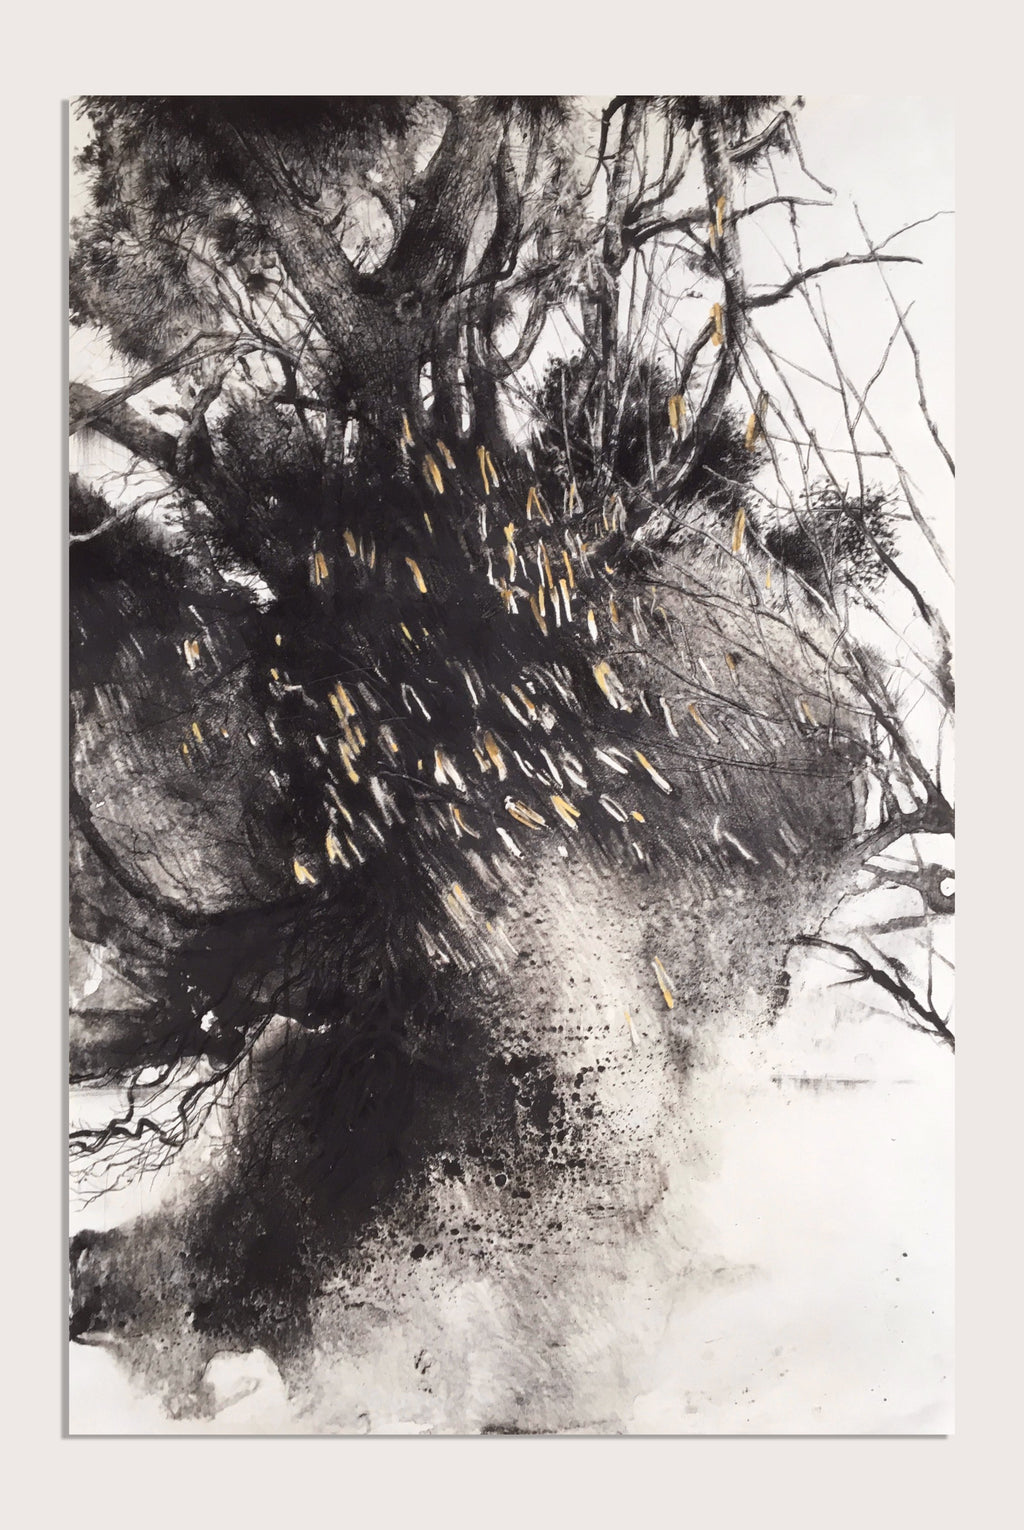 A representational drawing by contemporary, woman artist Frances Gynn